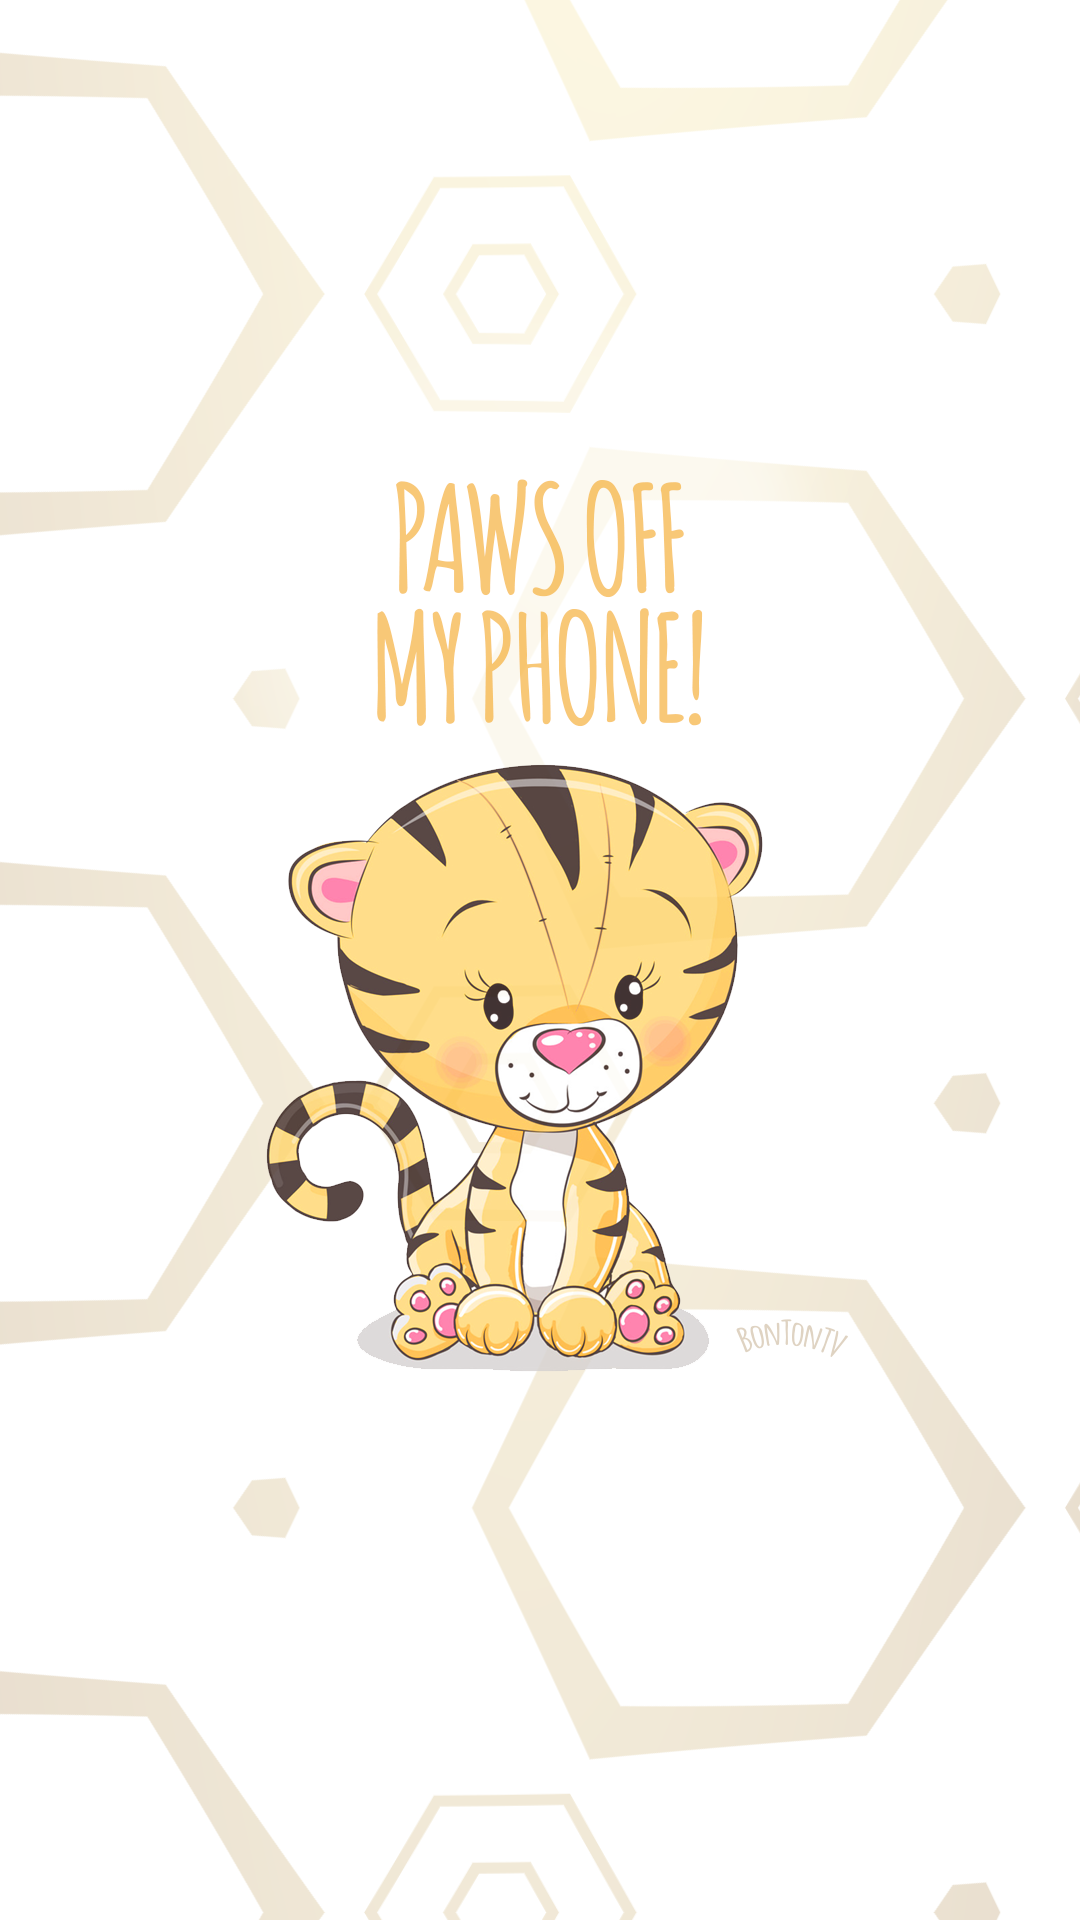 Phone Wallpapers Hd Cute Tiger By Bonton Tv Free Backgrounds 1080x1920 Wallpapers Iphone Smartphone Her Phone Wallpaper Iphone Wallpaper Cute Wallpapers